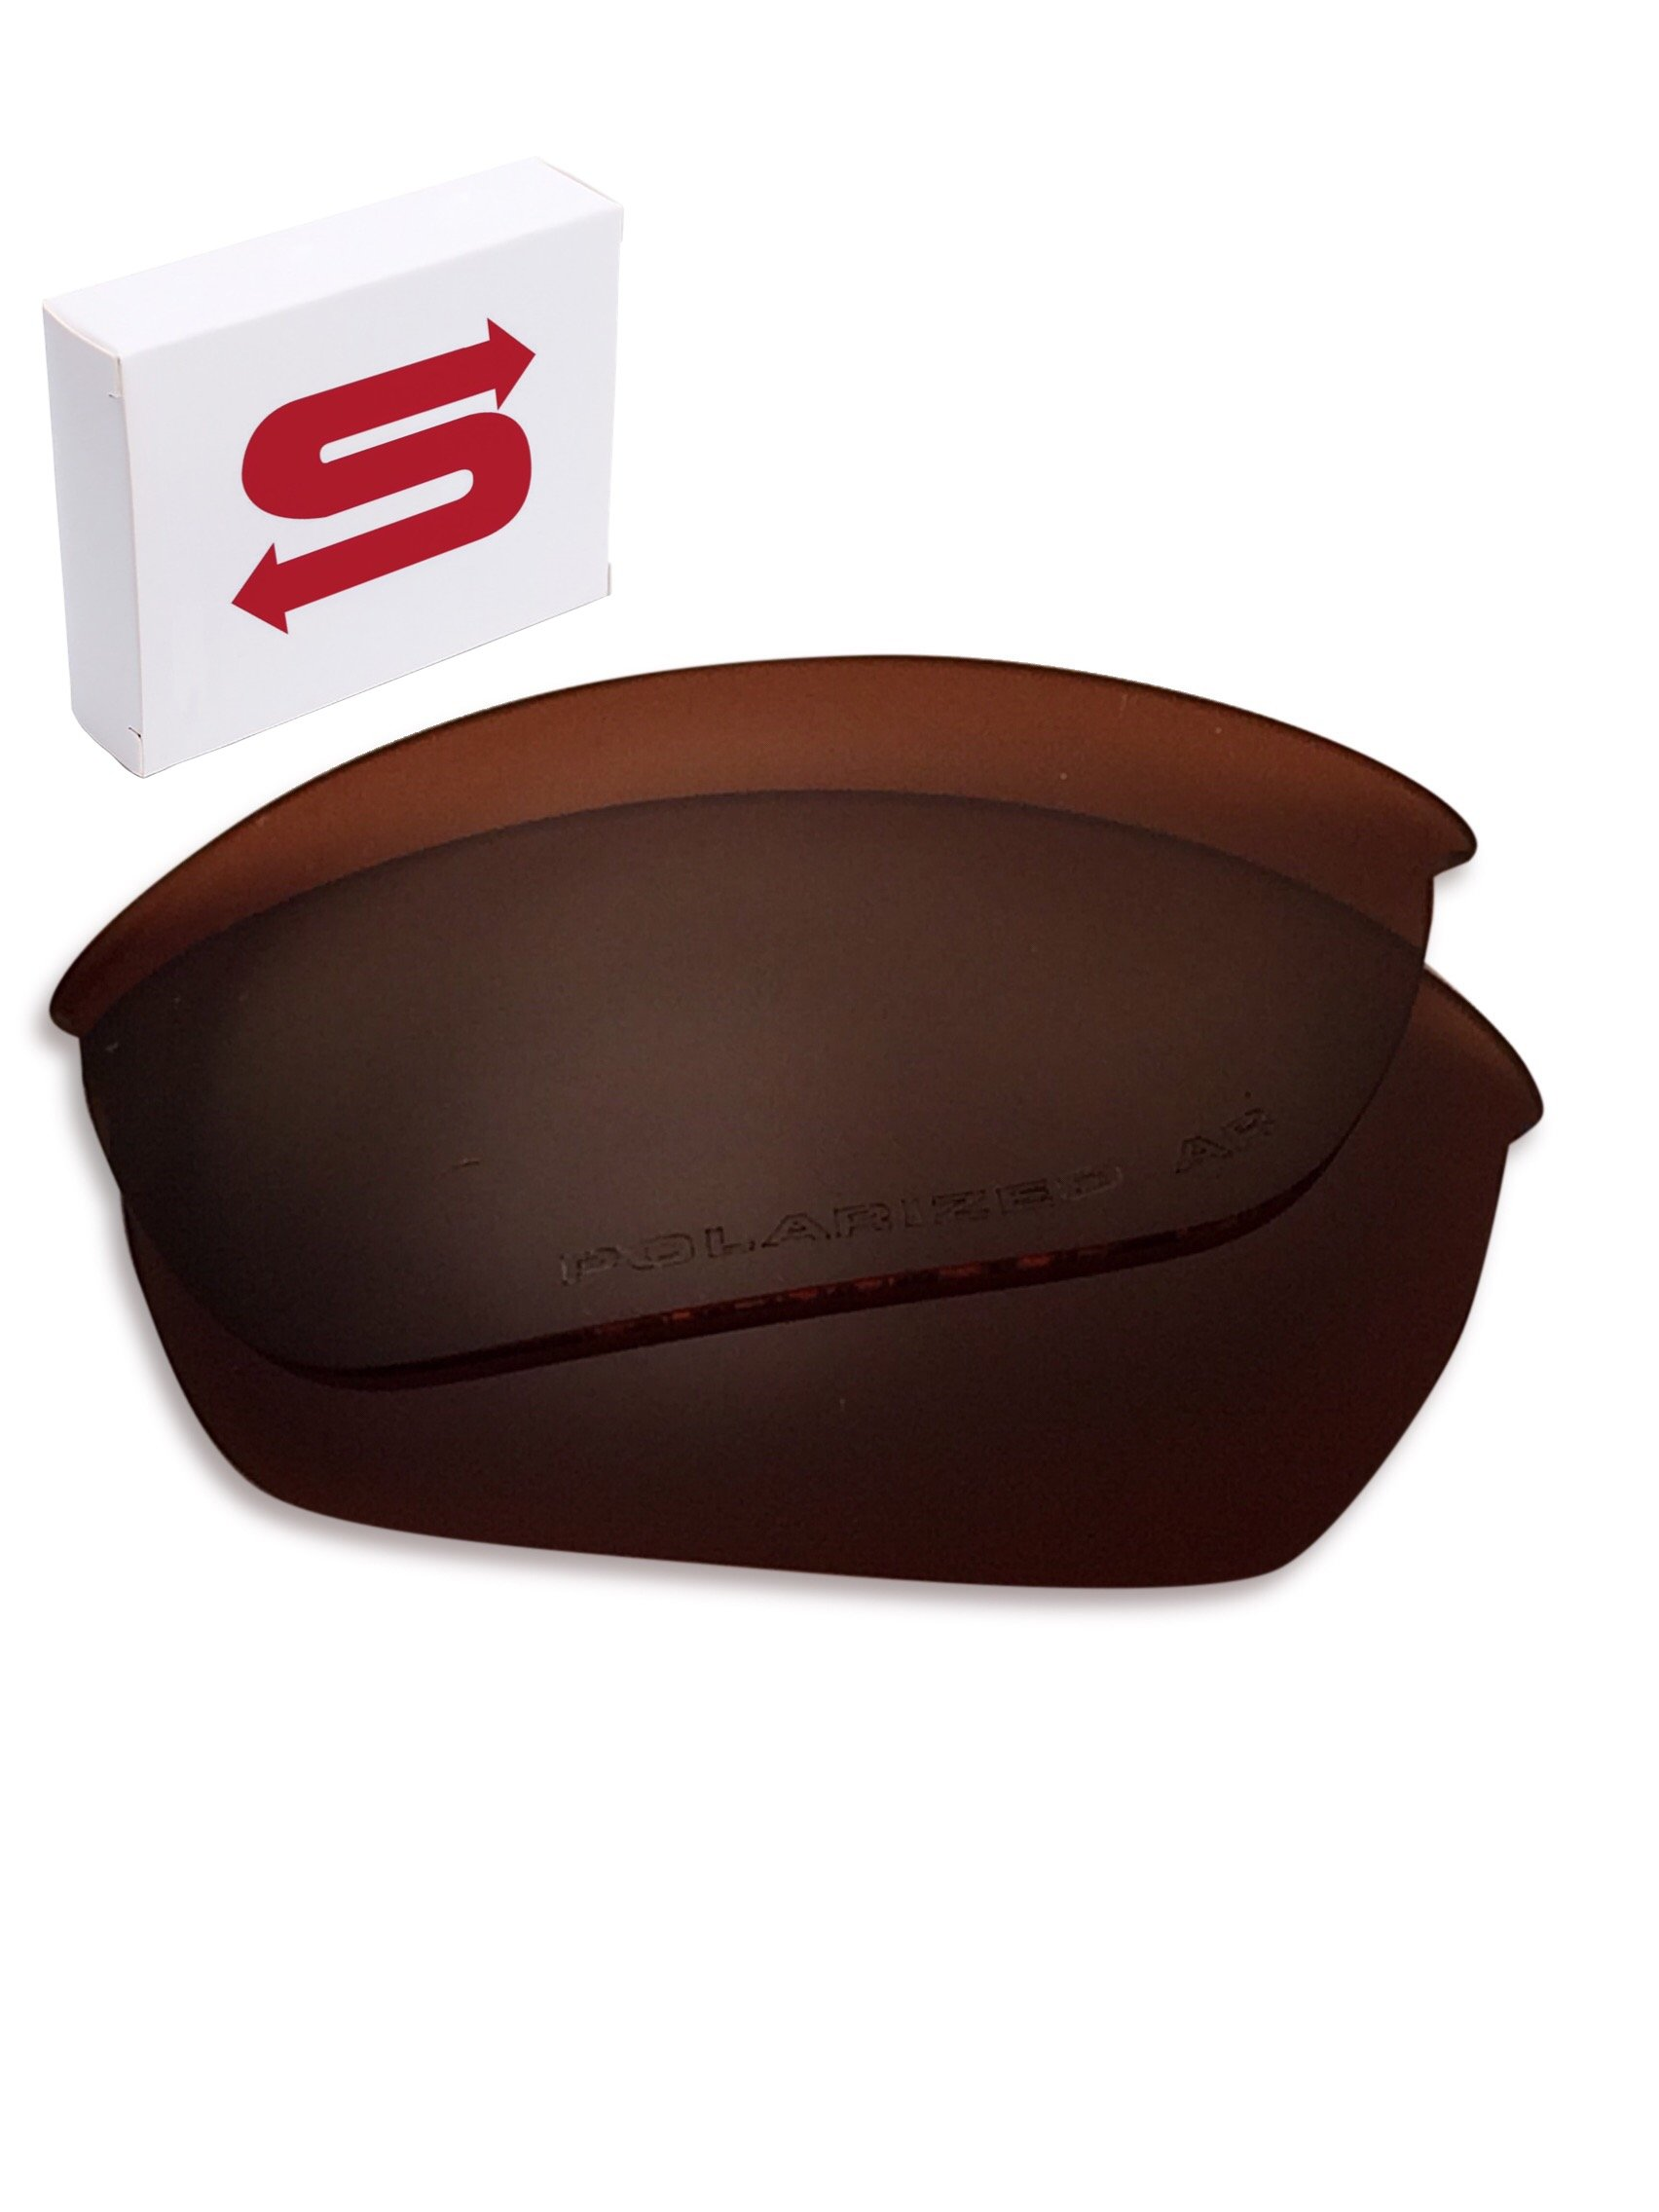 BROWN Oakley Half Jacket 2.0 Lenses POLARIZED by Lens Swap. QUALITY & PERFECT FIT